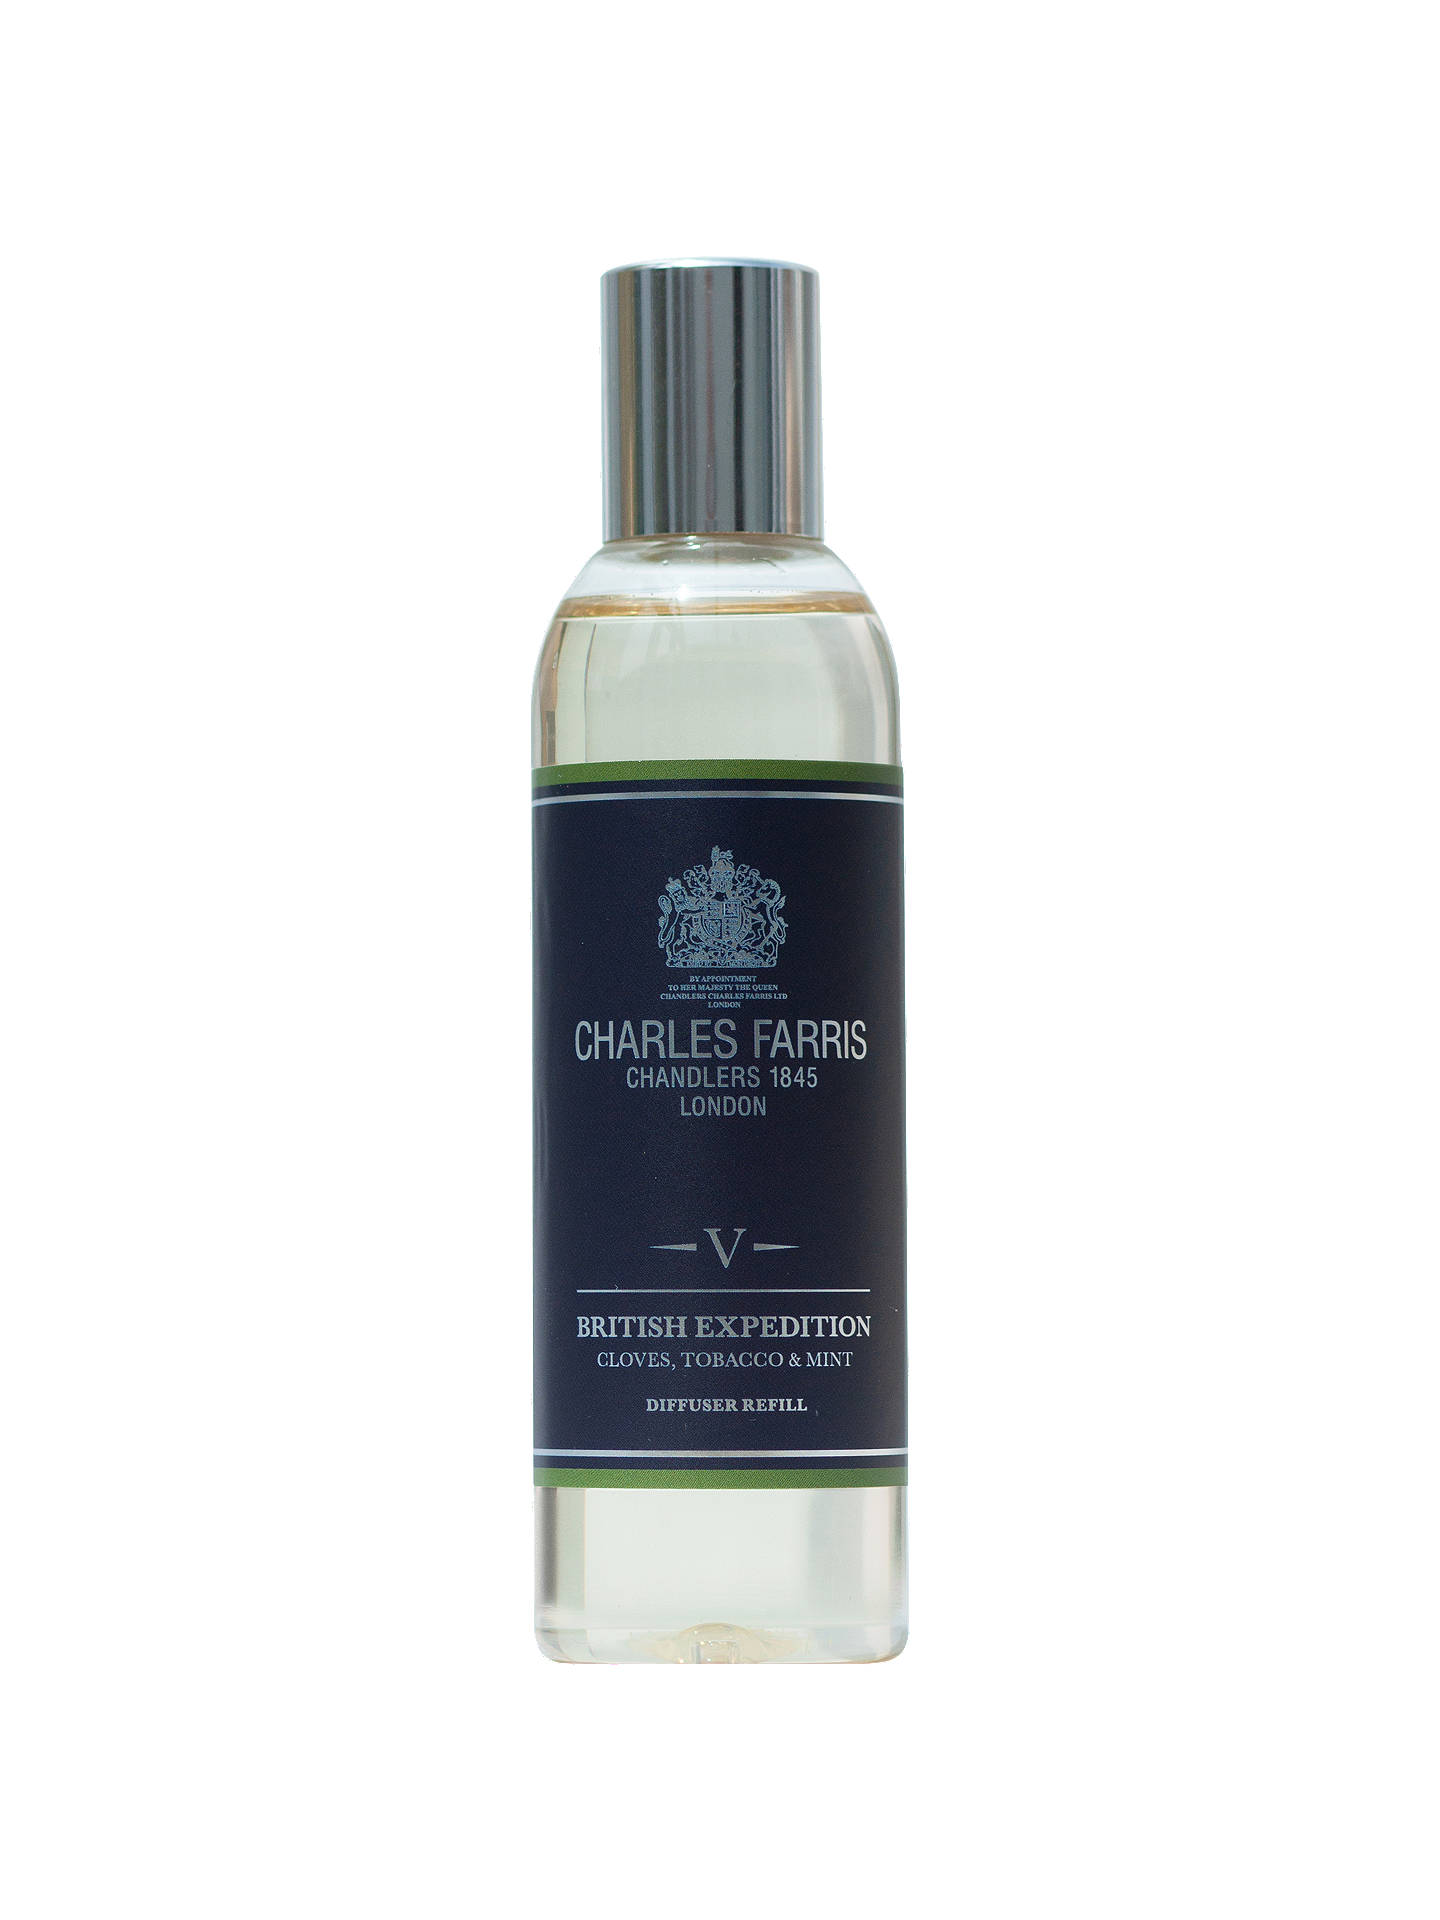 BuyCharles Farris British Expedition Diffuser Refill, 200ml Online at johnlewis.com